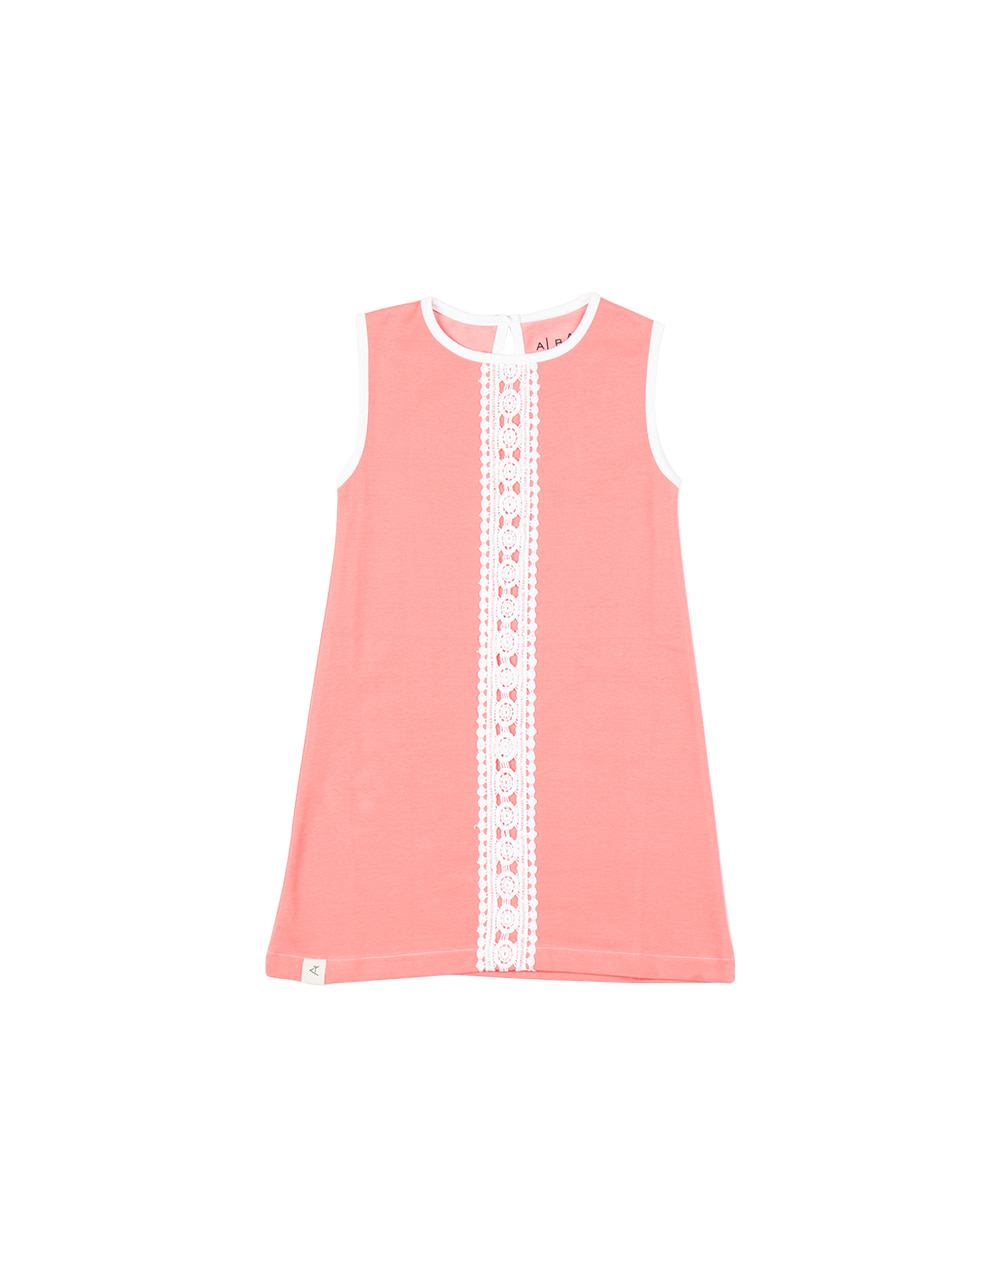 ALBA ORIGINAL SMILLA DRESS  Tea Rose